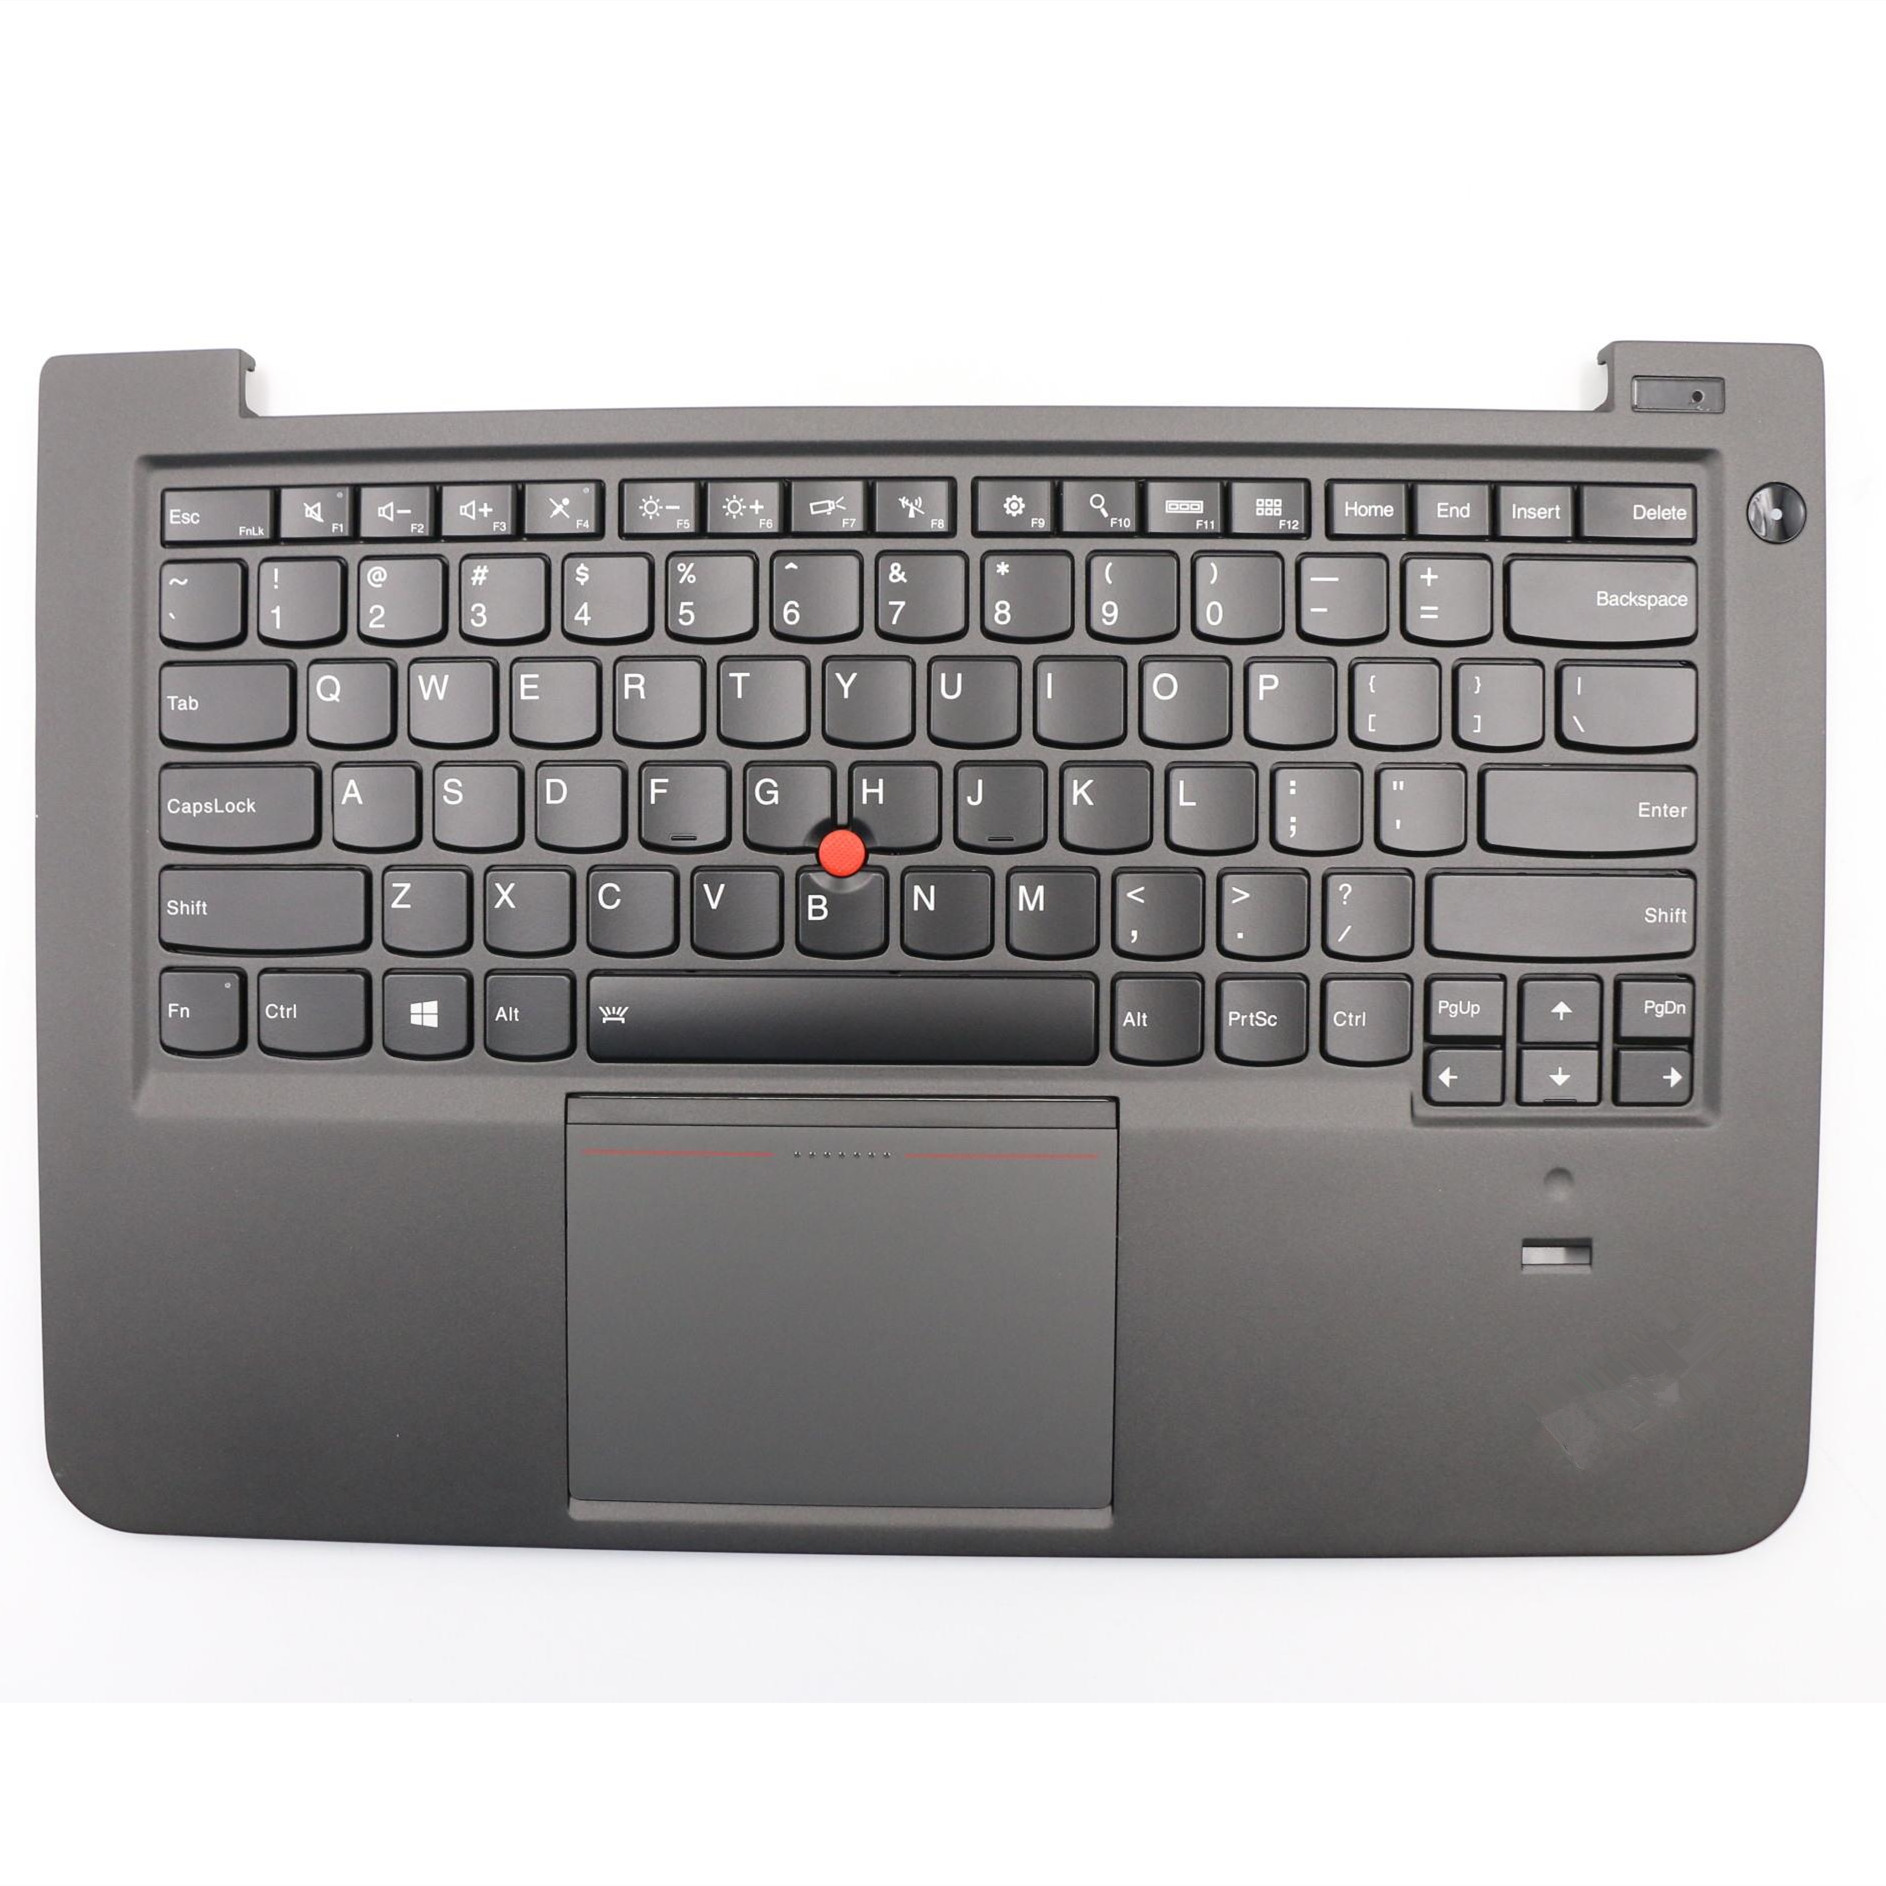 New For Lenovo S3 S431 S440 Palmrest Us Backlit Keyboard With Touchpad 04x0992 Replacement Keyboards Computer Office Aliexpress